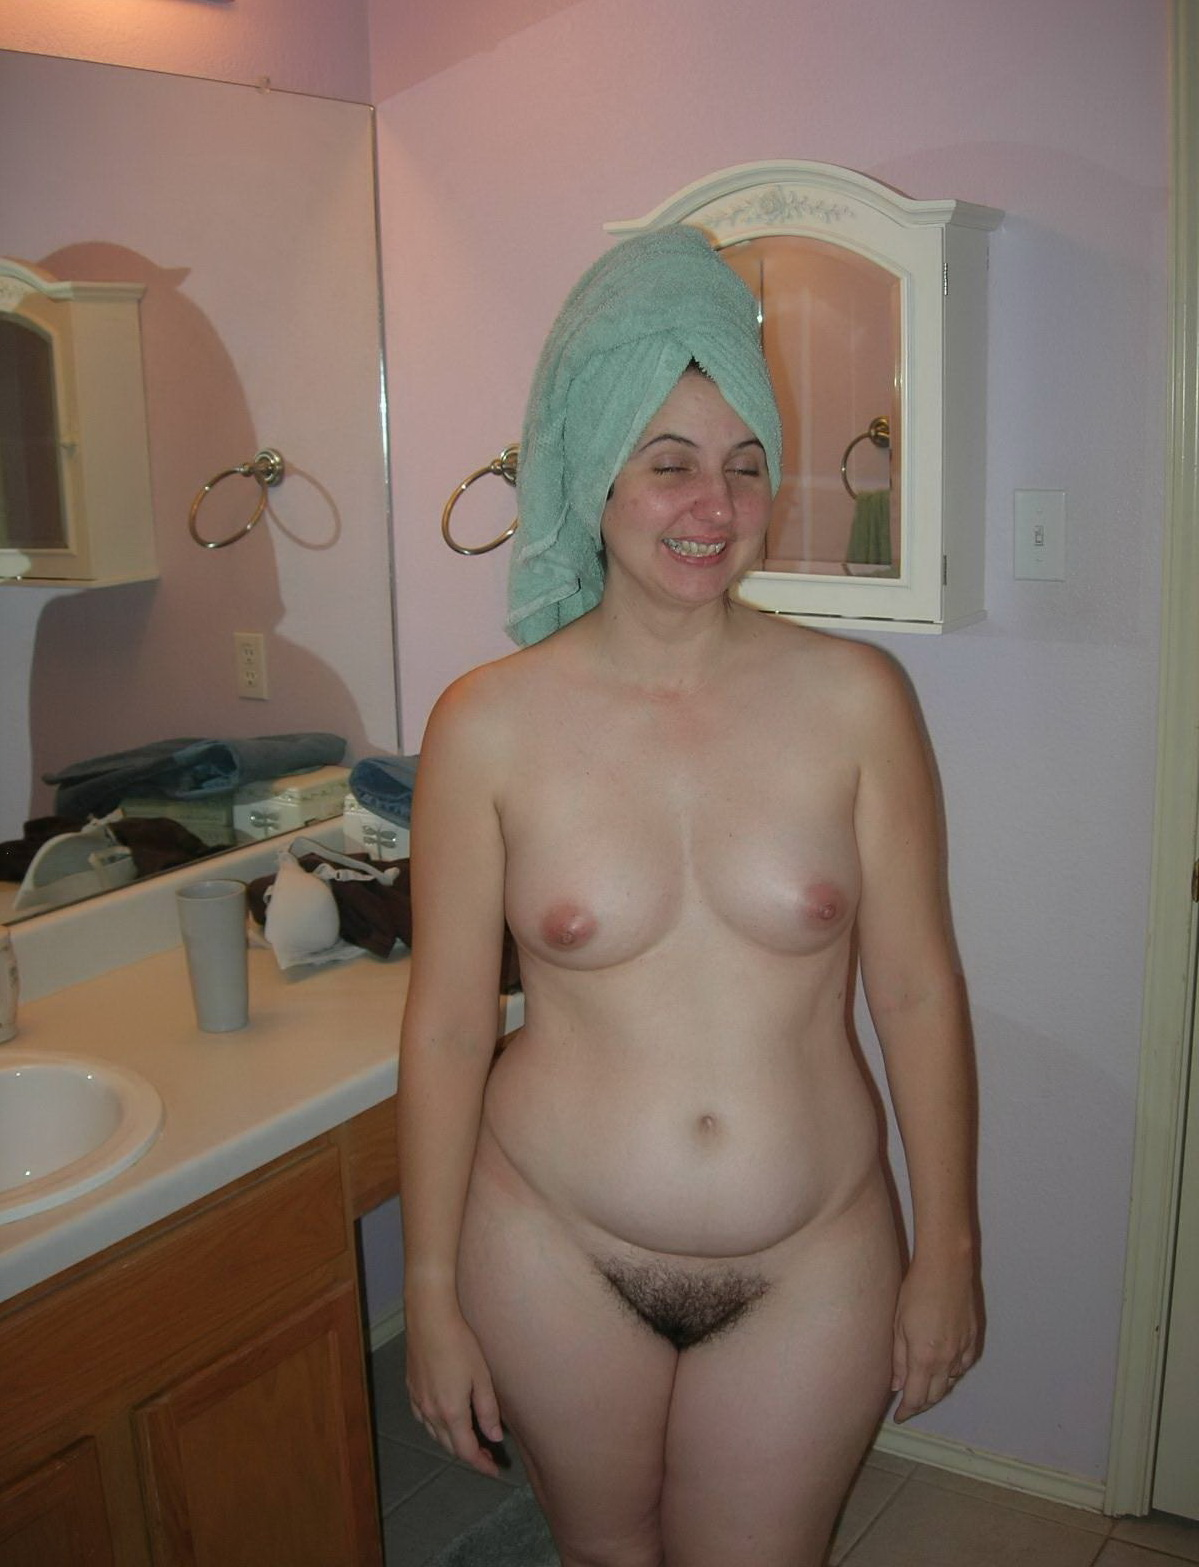 chubby naked amature girls